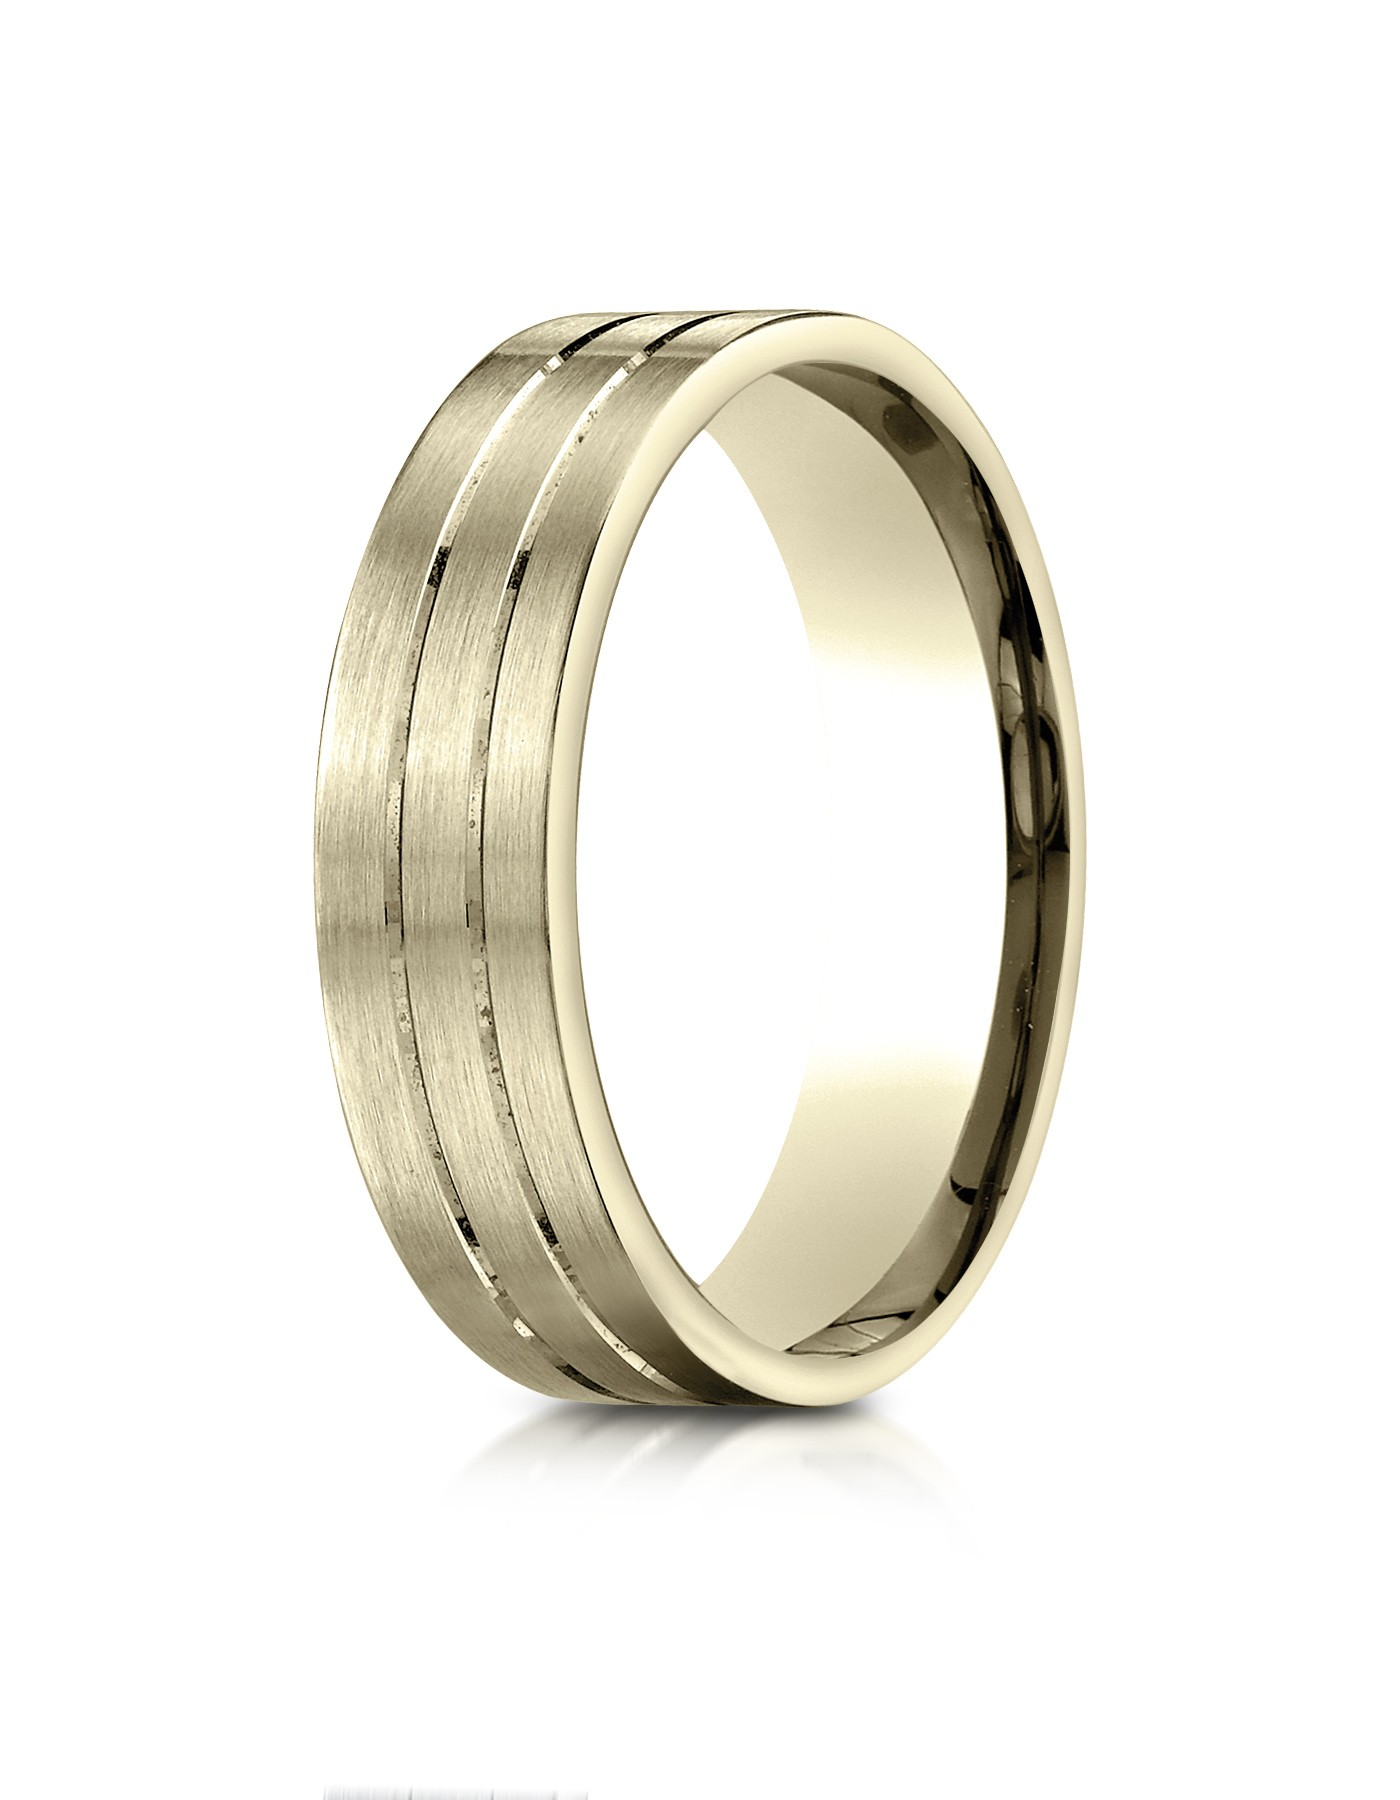 14k Yellow Gold 6mm Comfort-fit Satin-finished With Parallel Center Cuts Carved Design Band